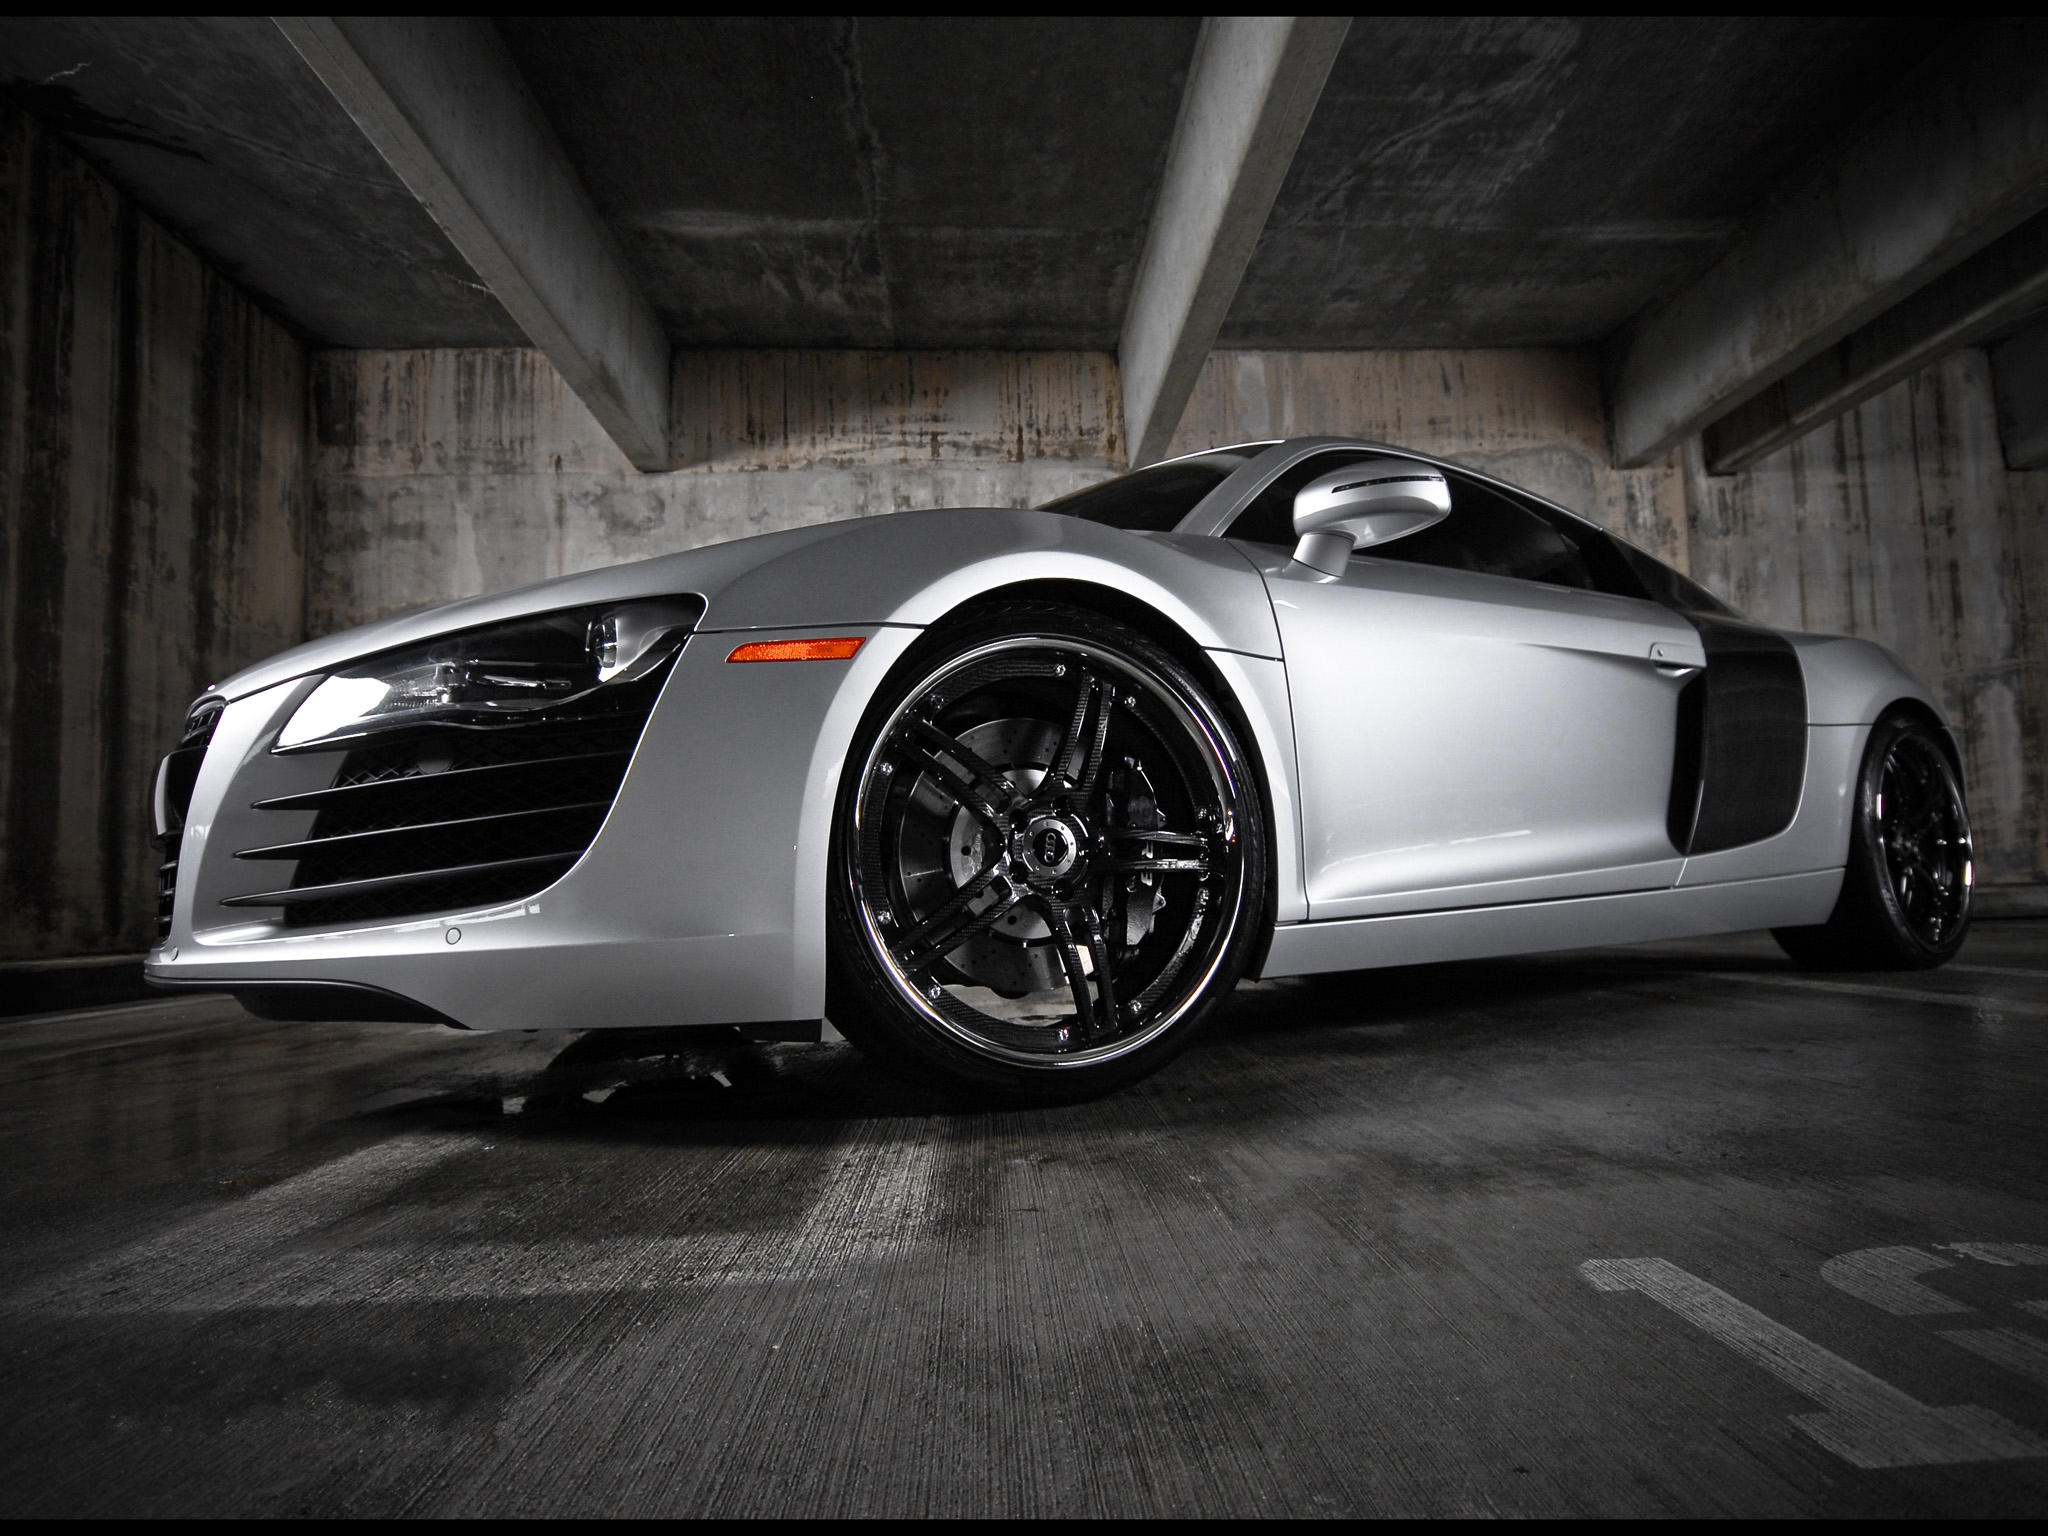 Audi R8 In A Garage Hd Widescreen Wallpapers Car Dui Auto Insurance